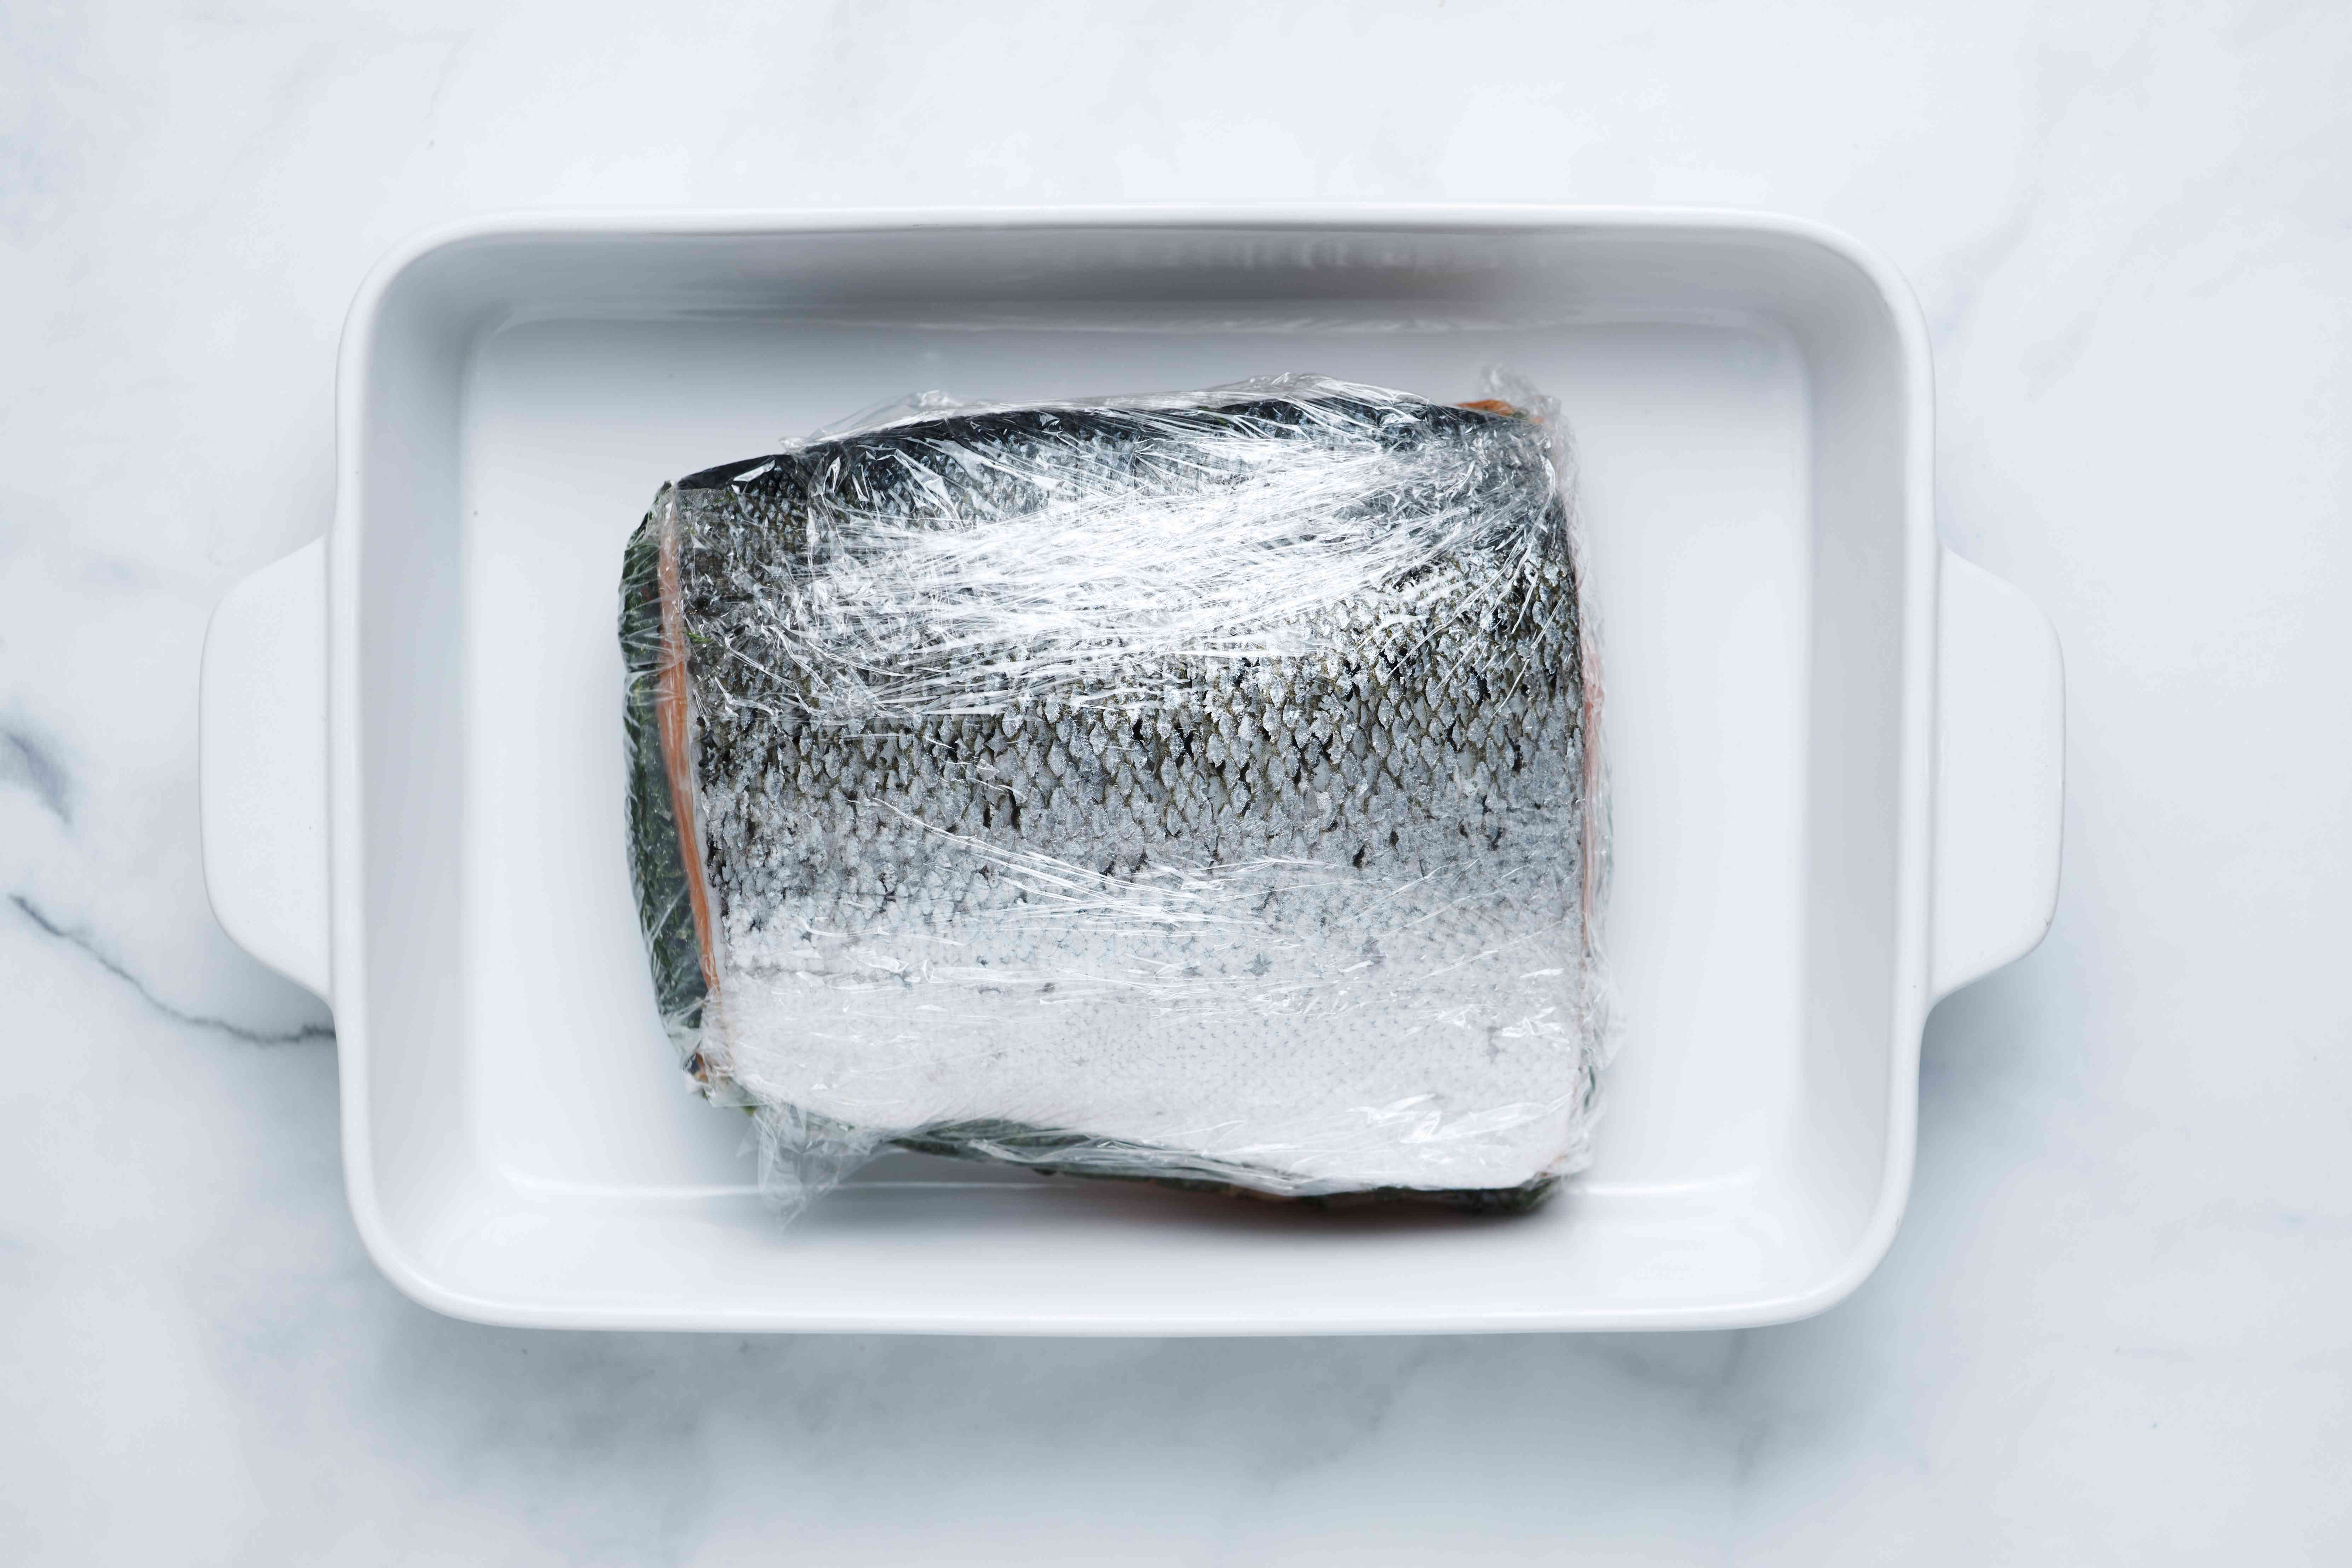 salmon fillets wrapped in plastic in a baking dish